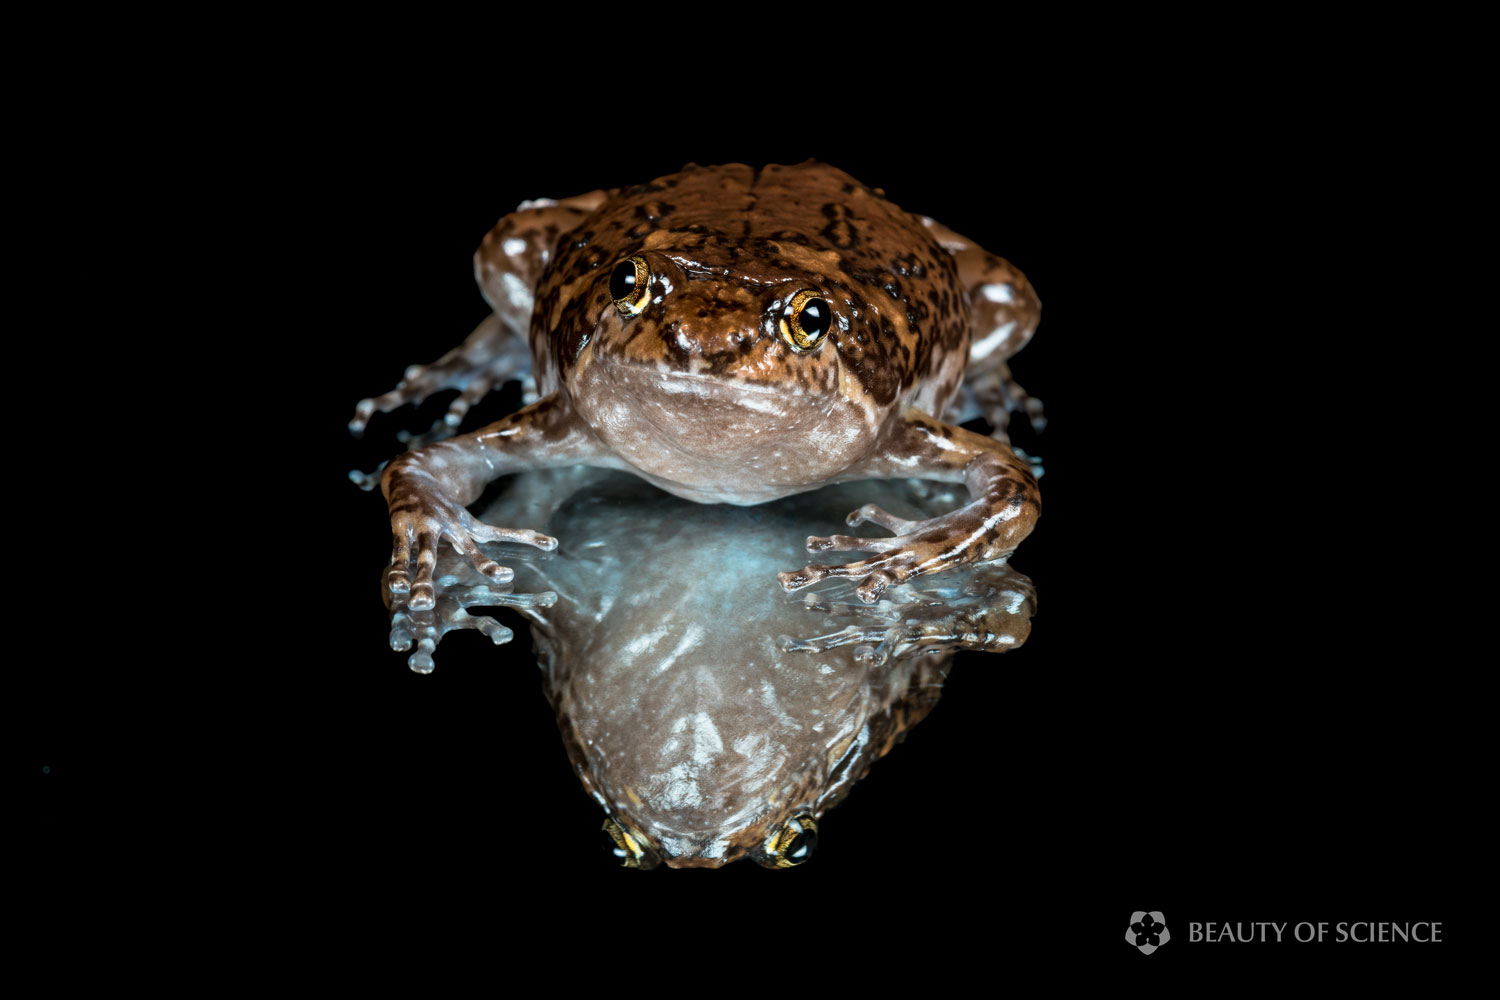 sichuan-narrow-mouthed-frog-art-06.jpg